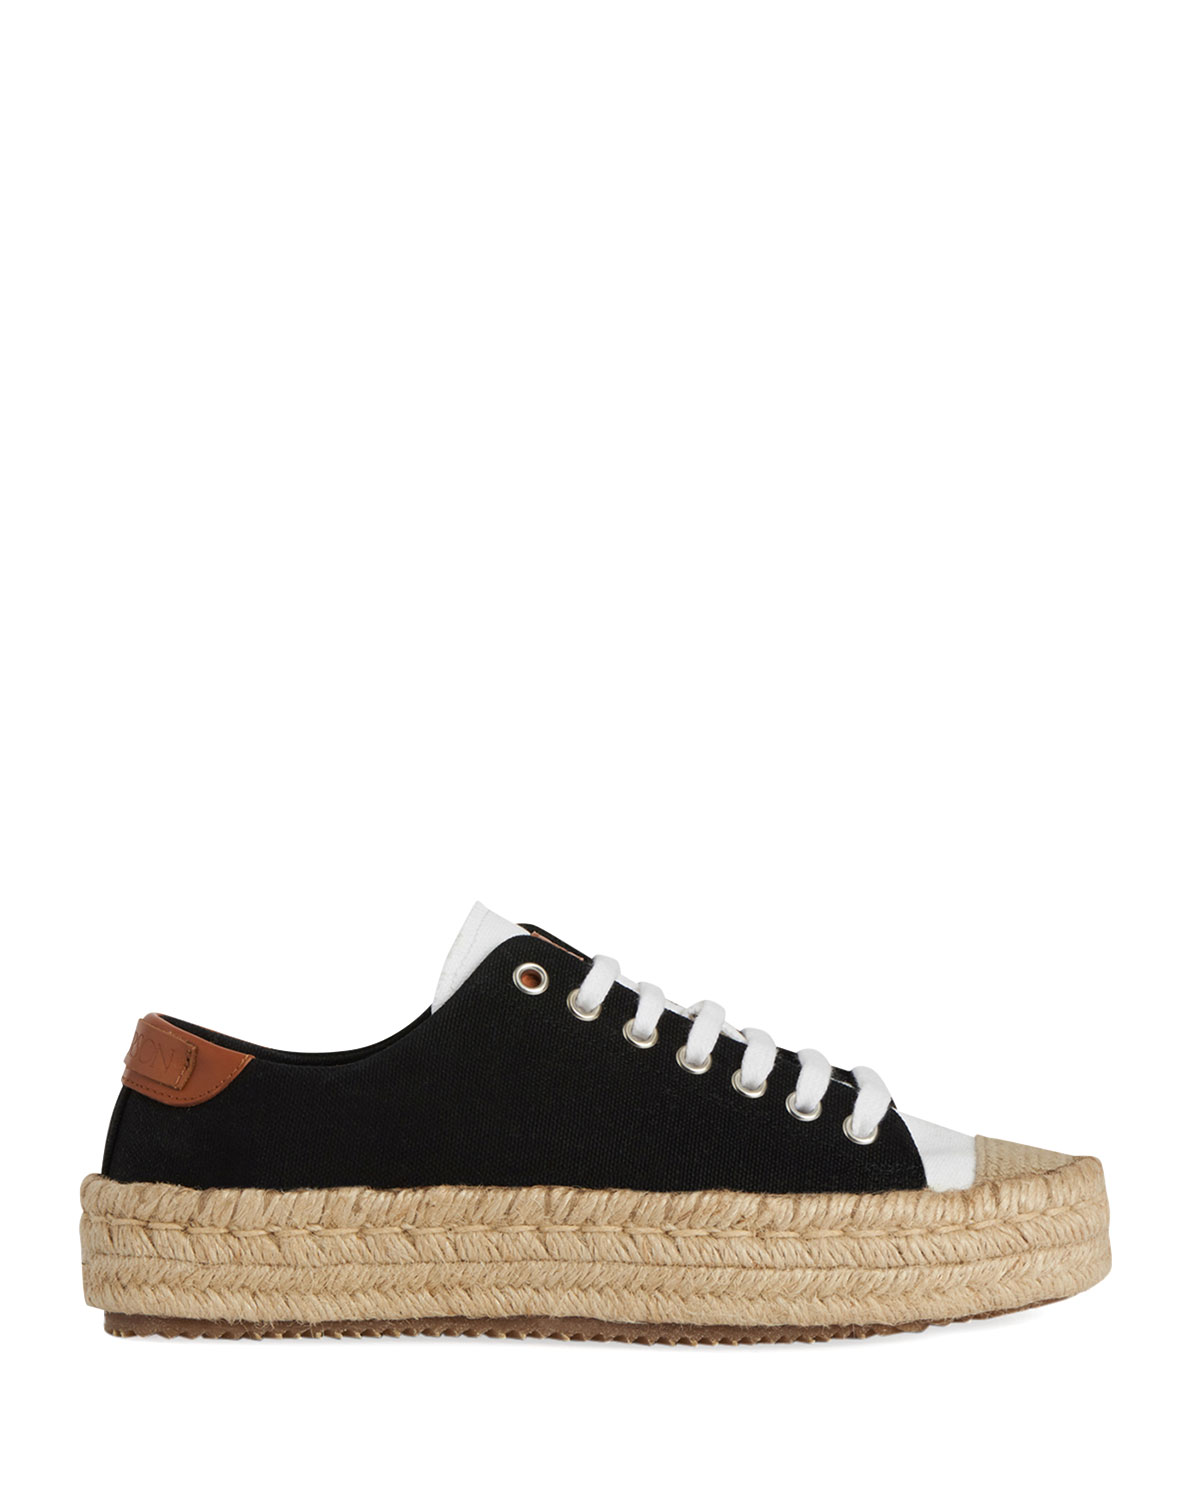 Cotton Lace-Up Espadrille Sneakers